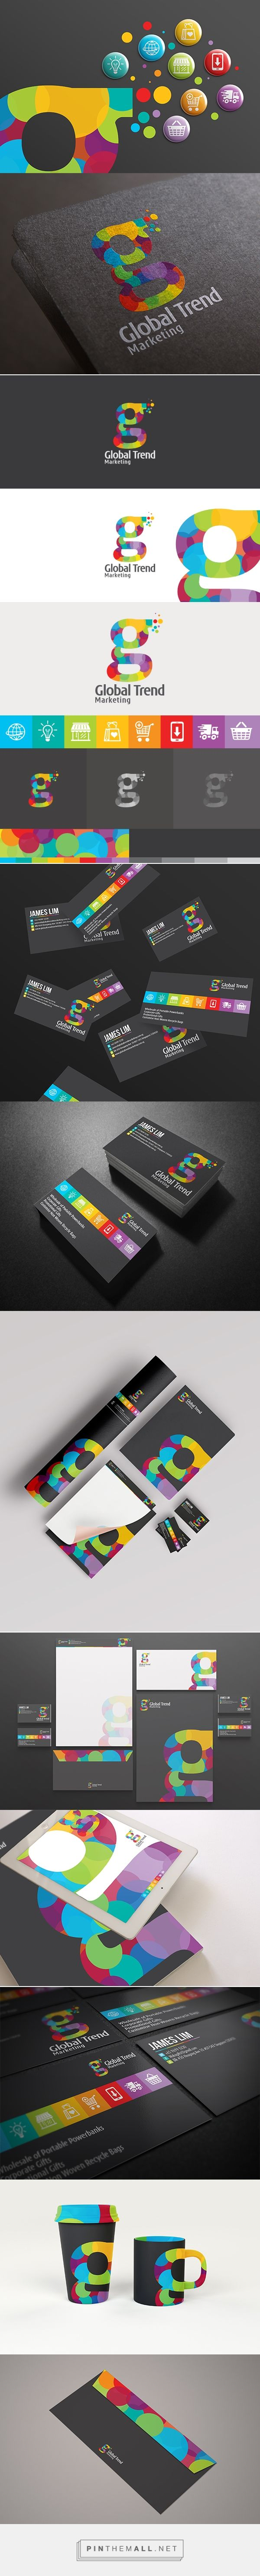 1054 best 02 iDentity Business Card images on Pinterest